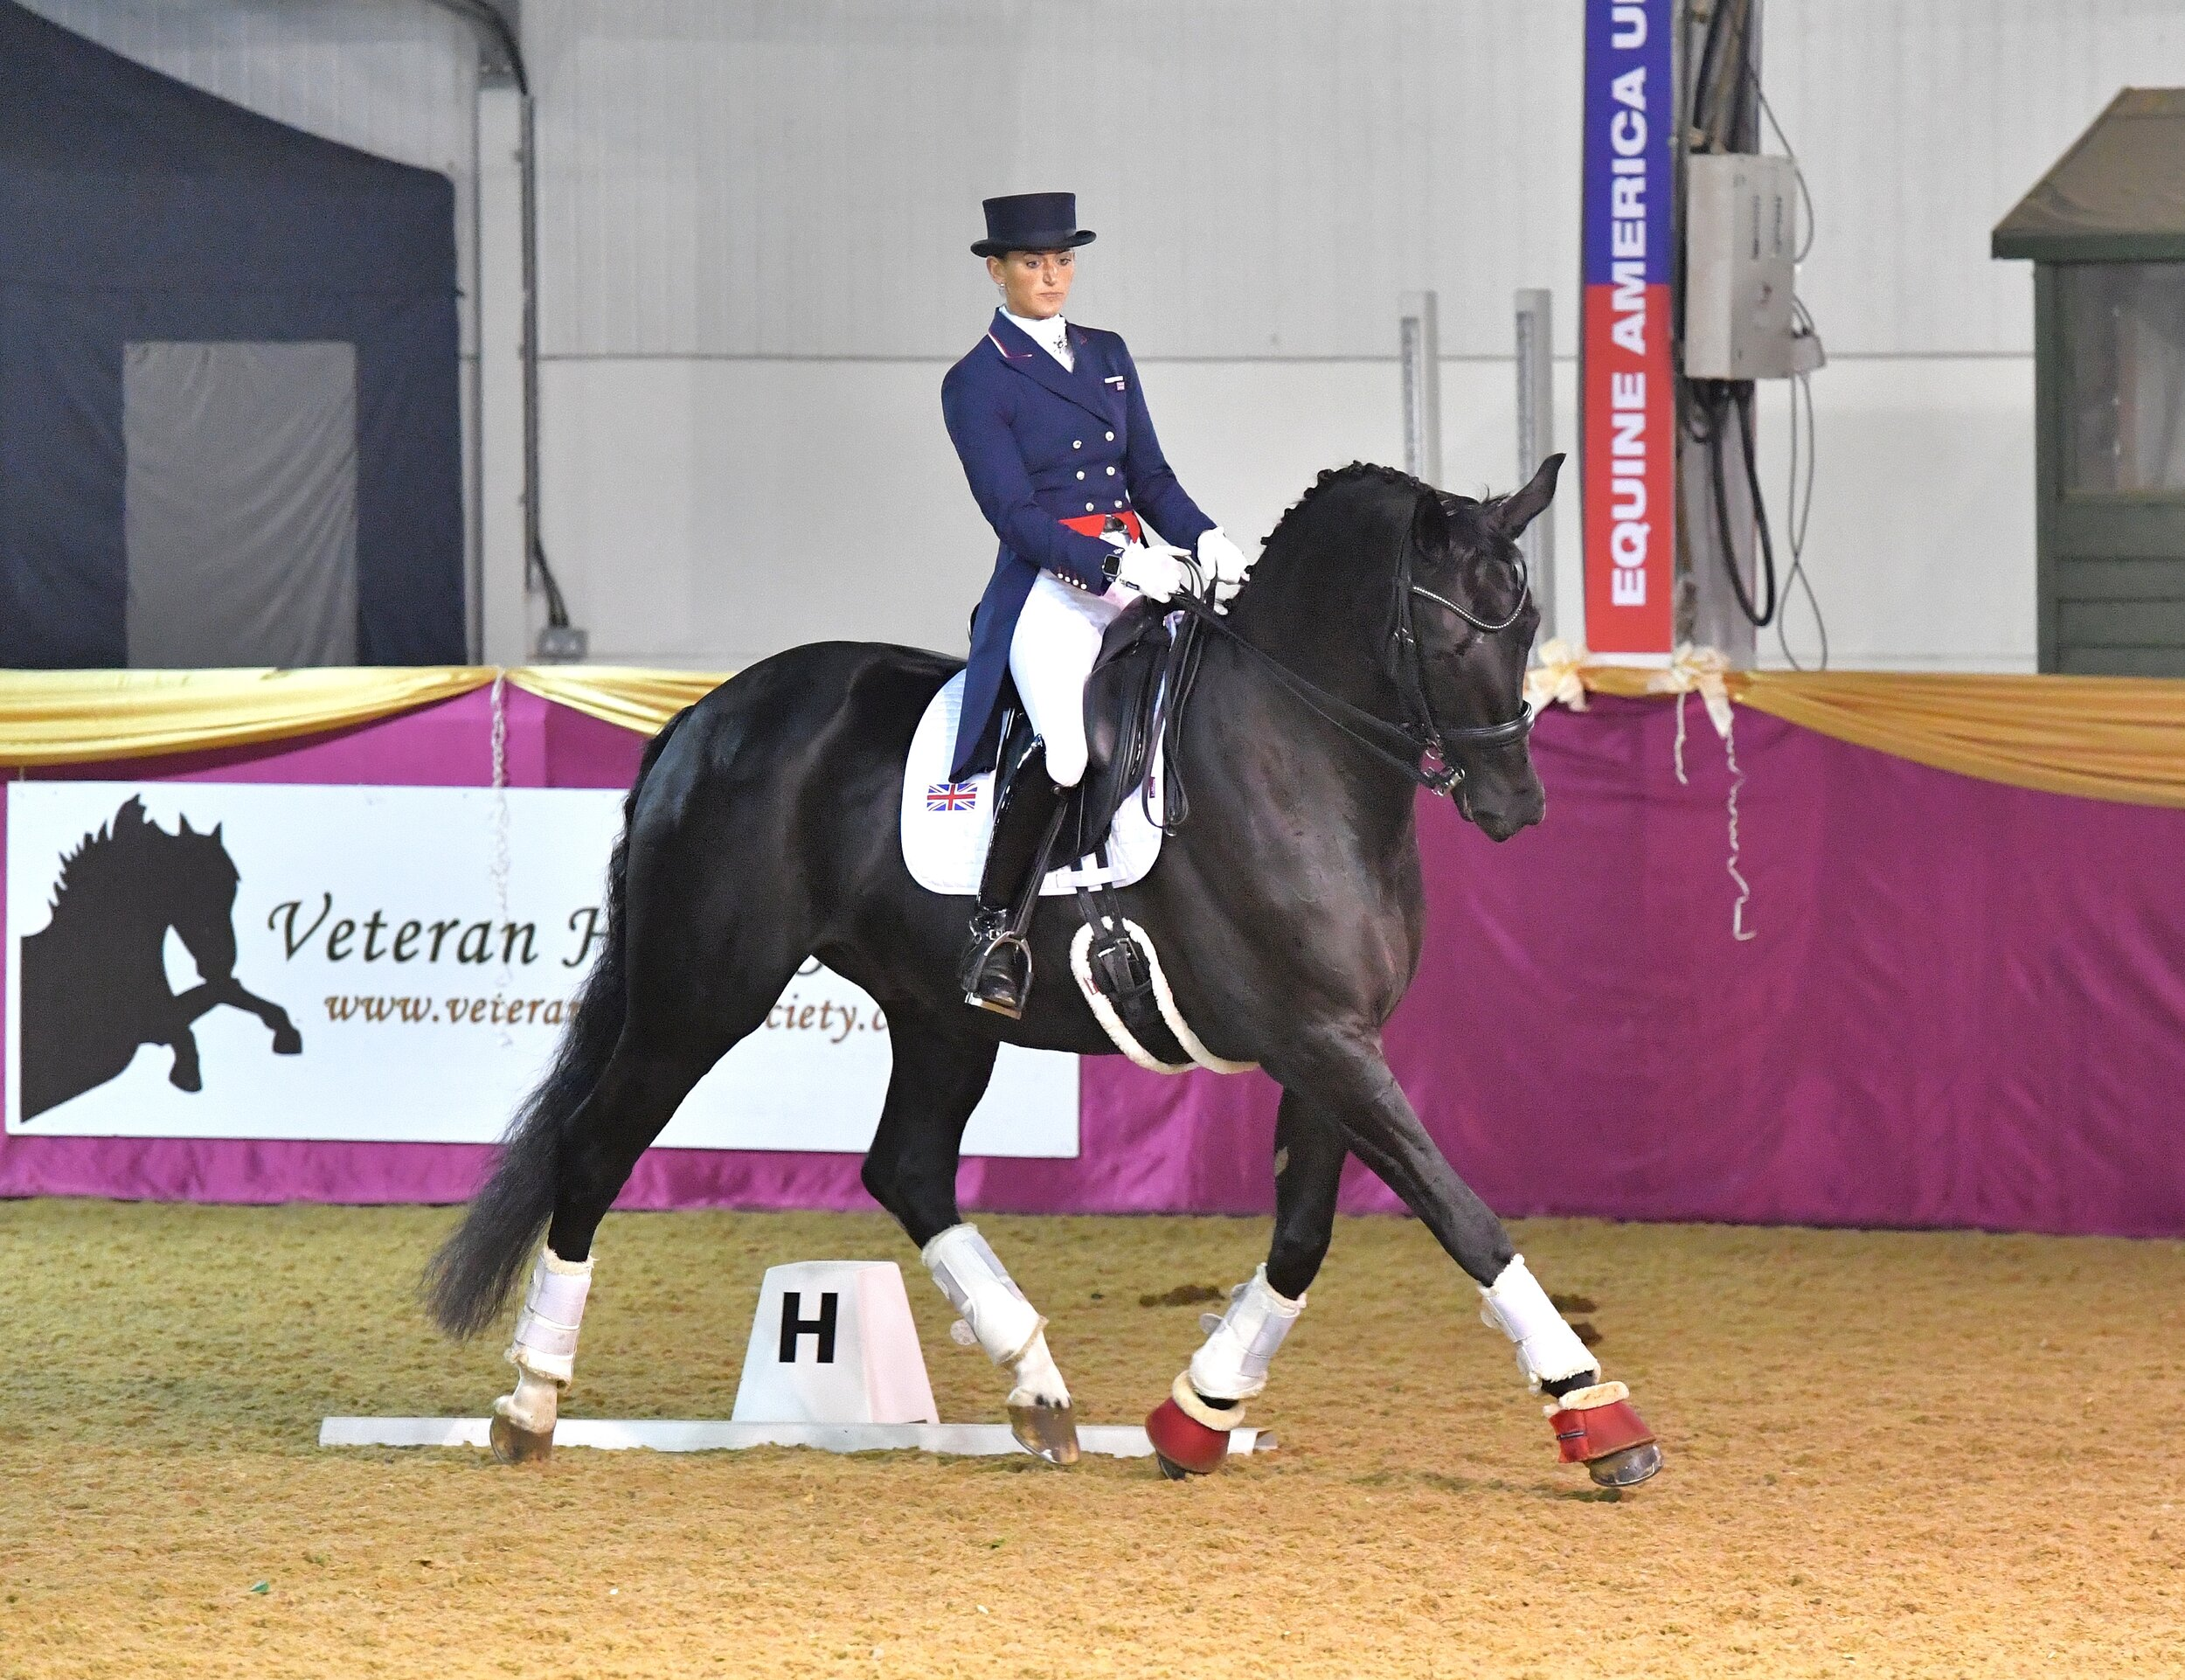 VHS member, Lindsay Hancock, gave an outstanding dressage to music performance with her Team GB horse Barachiel